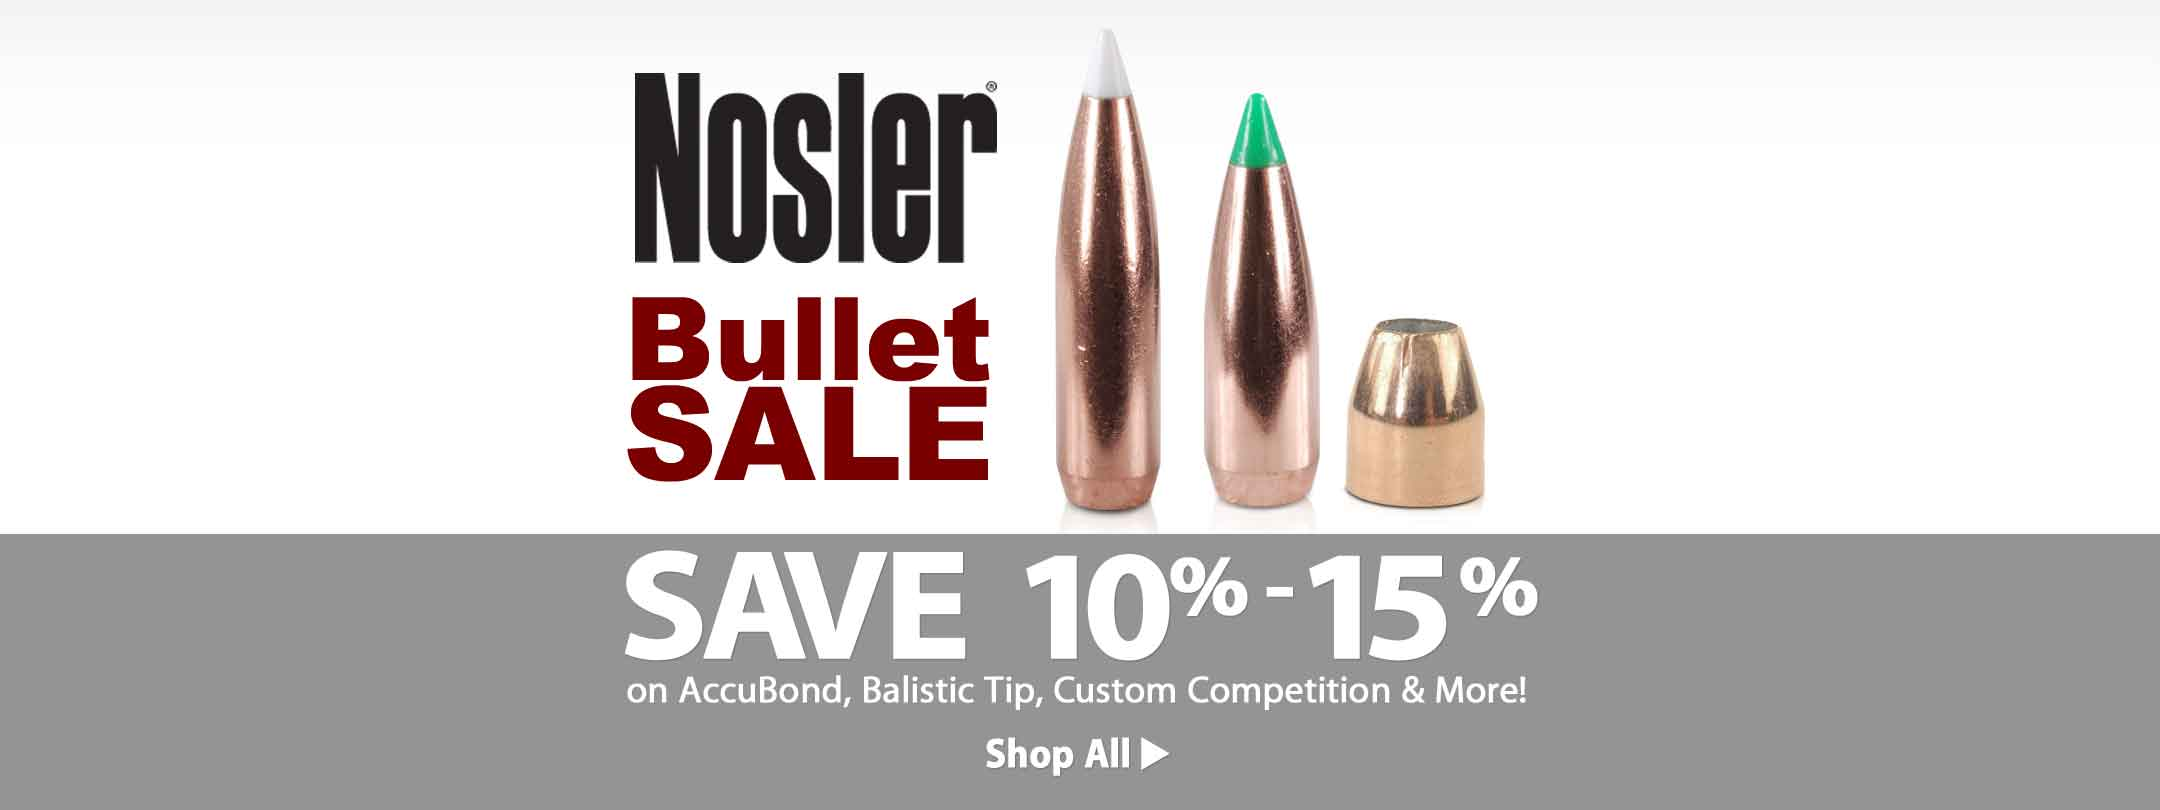 Save 10% - 15% on Nosler Bullets